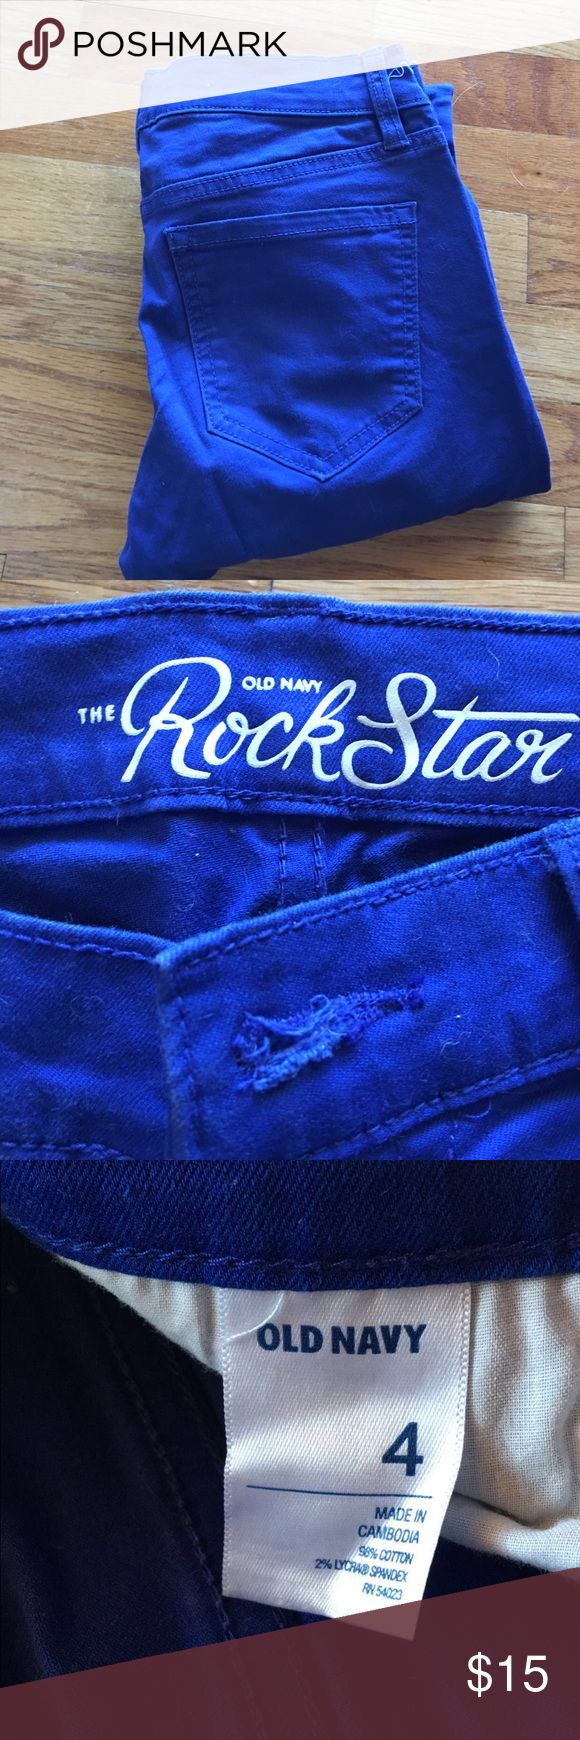 Old Navy Rockstar royal blue jeans Old Navy Rockstar jeans. Royal blue color, size 4. No damage. Clean, smoke free home. Always willing to negotiate prices! Old Navy Jeans